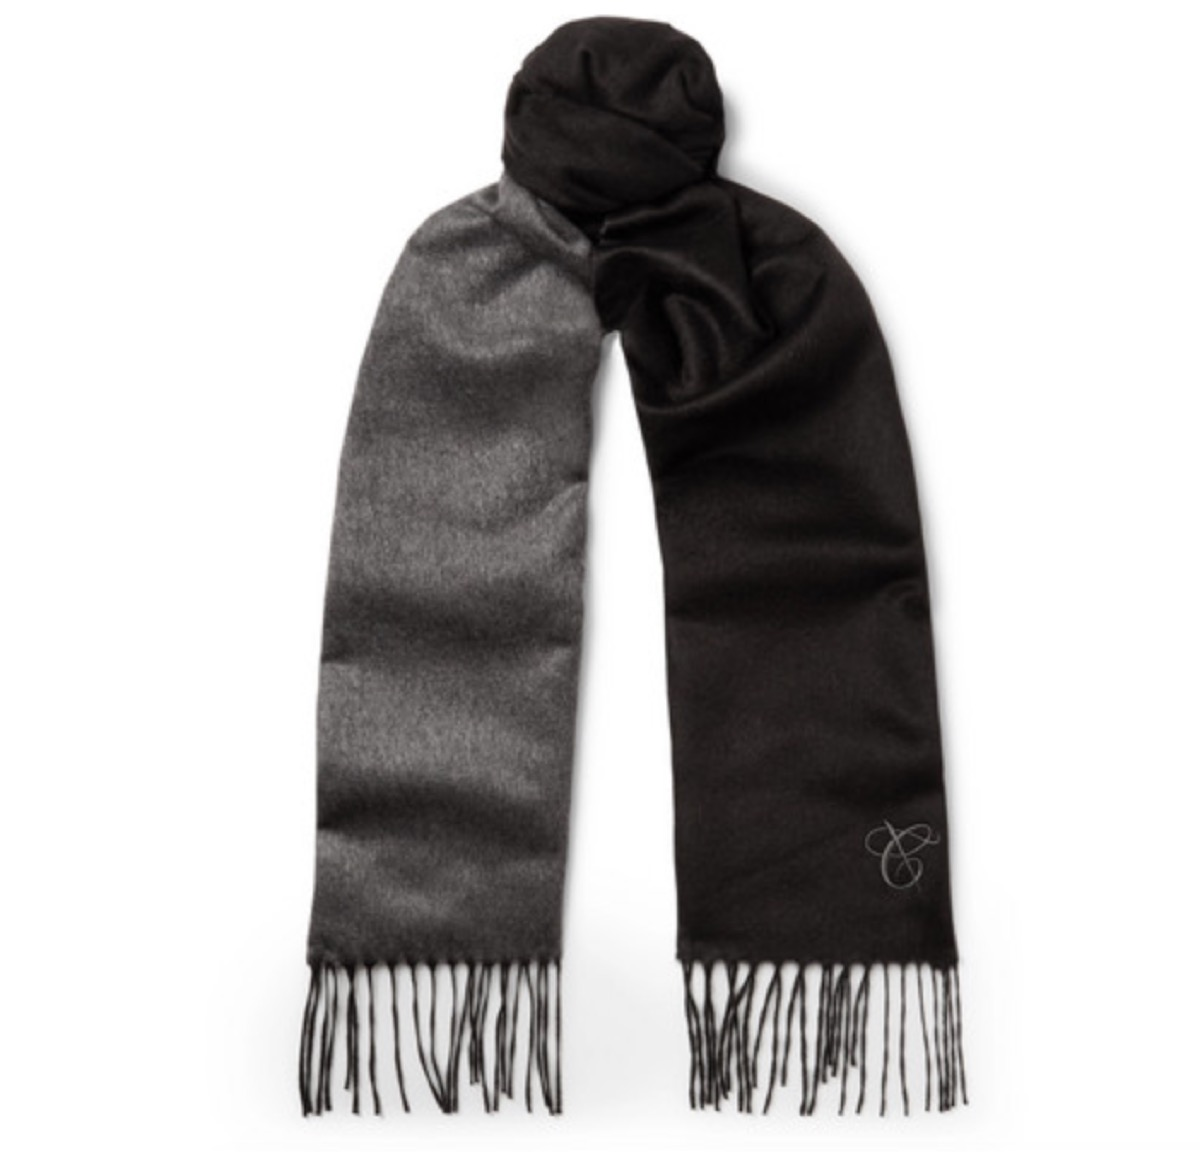 canali scarf, gifts over 40